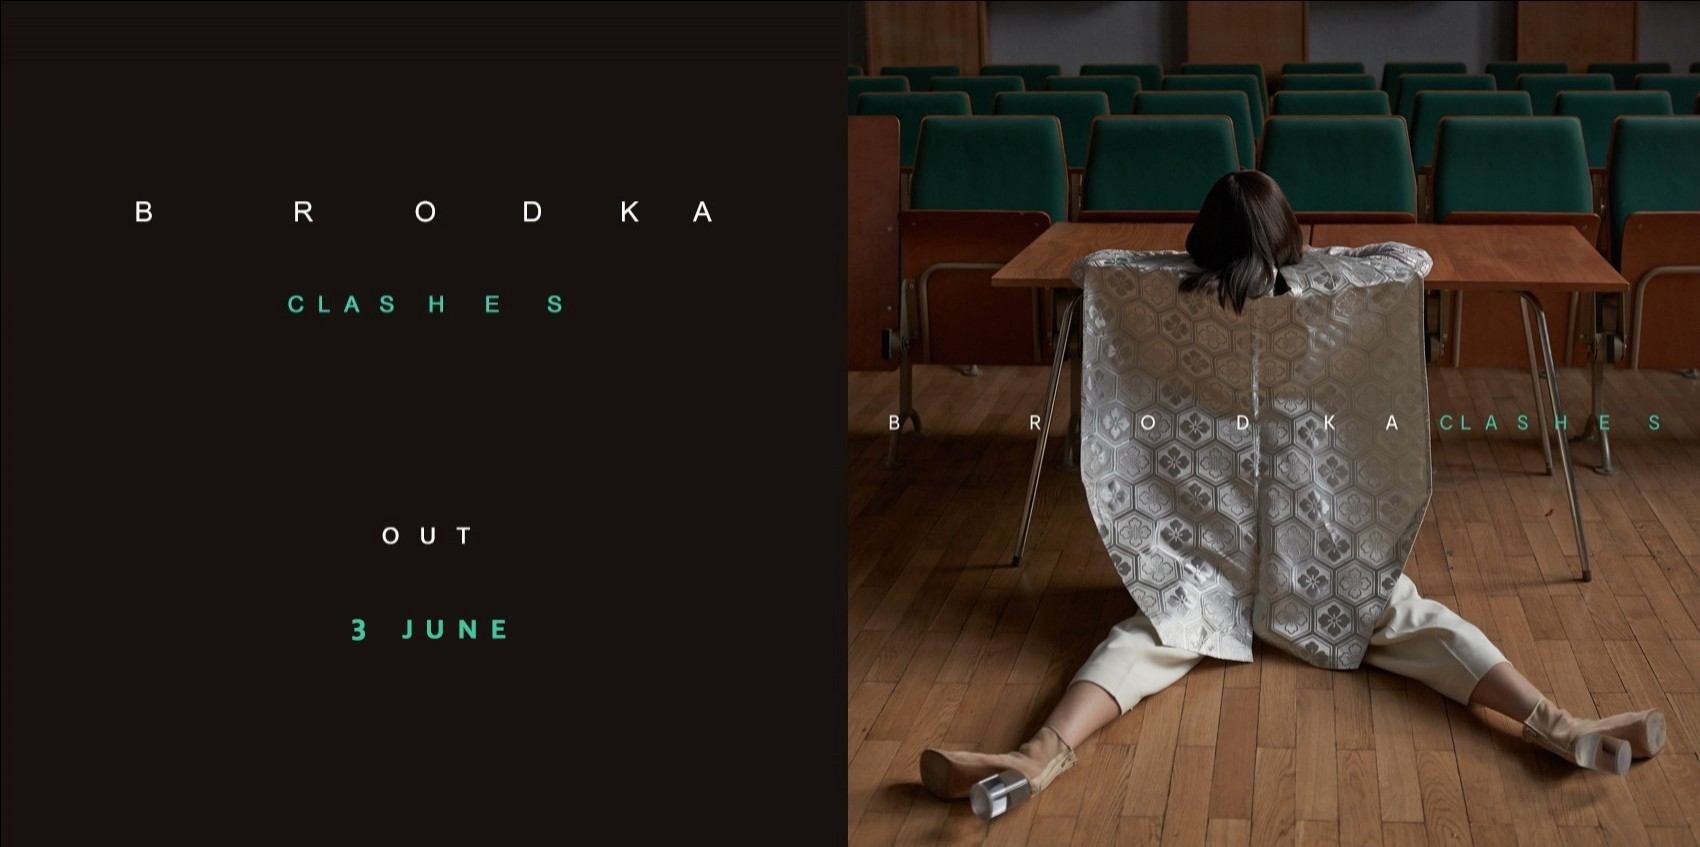 BRODKA\'S ALBUM \'CLASHES\' - OUT 3RD JUNE